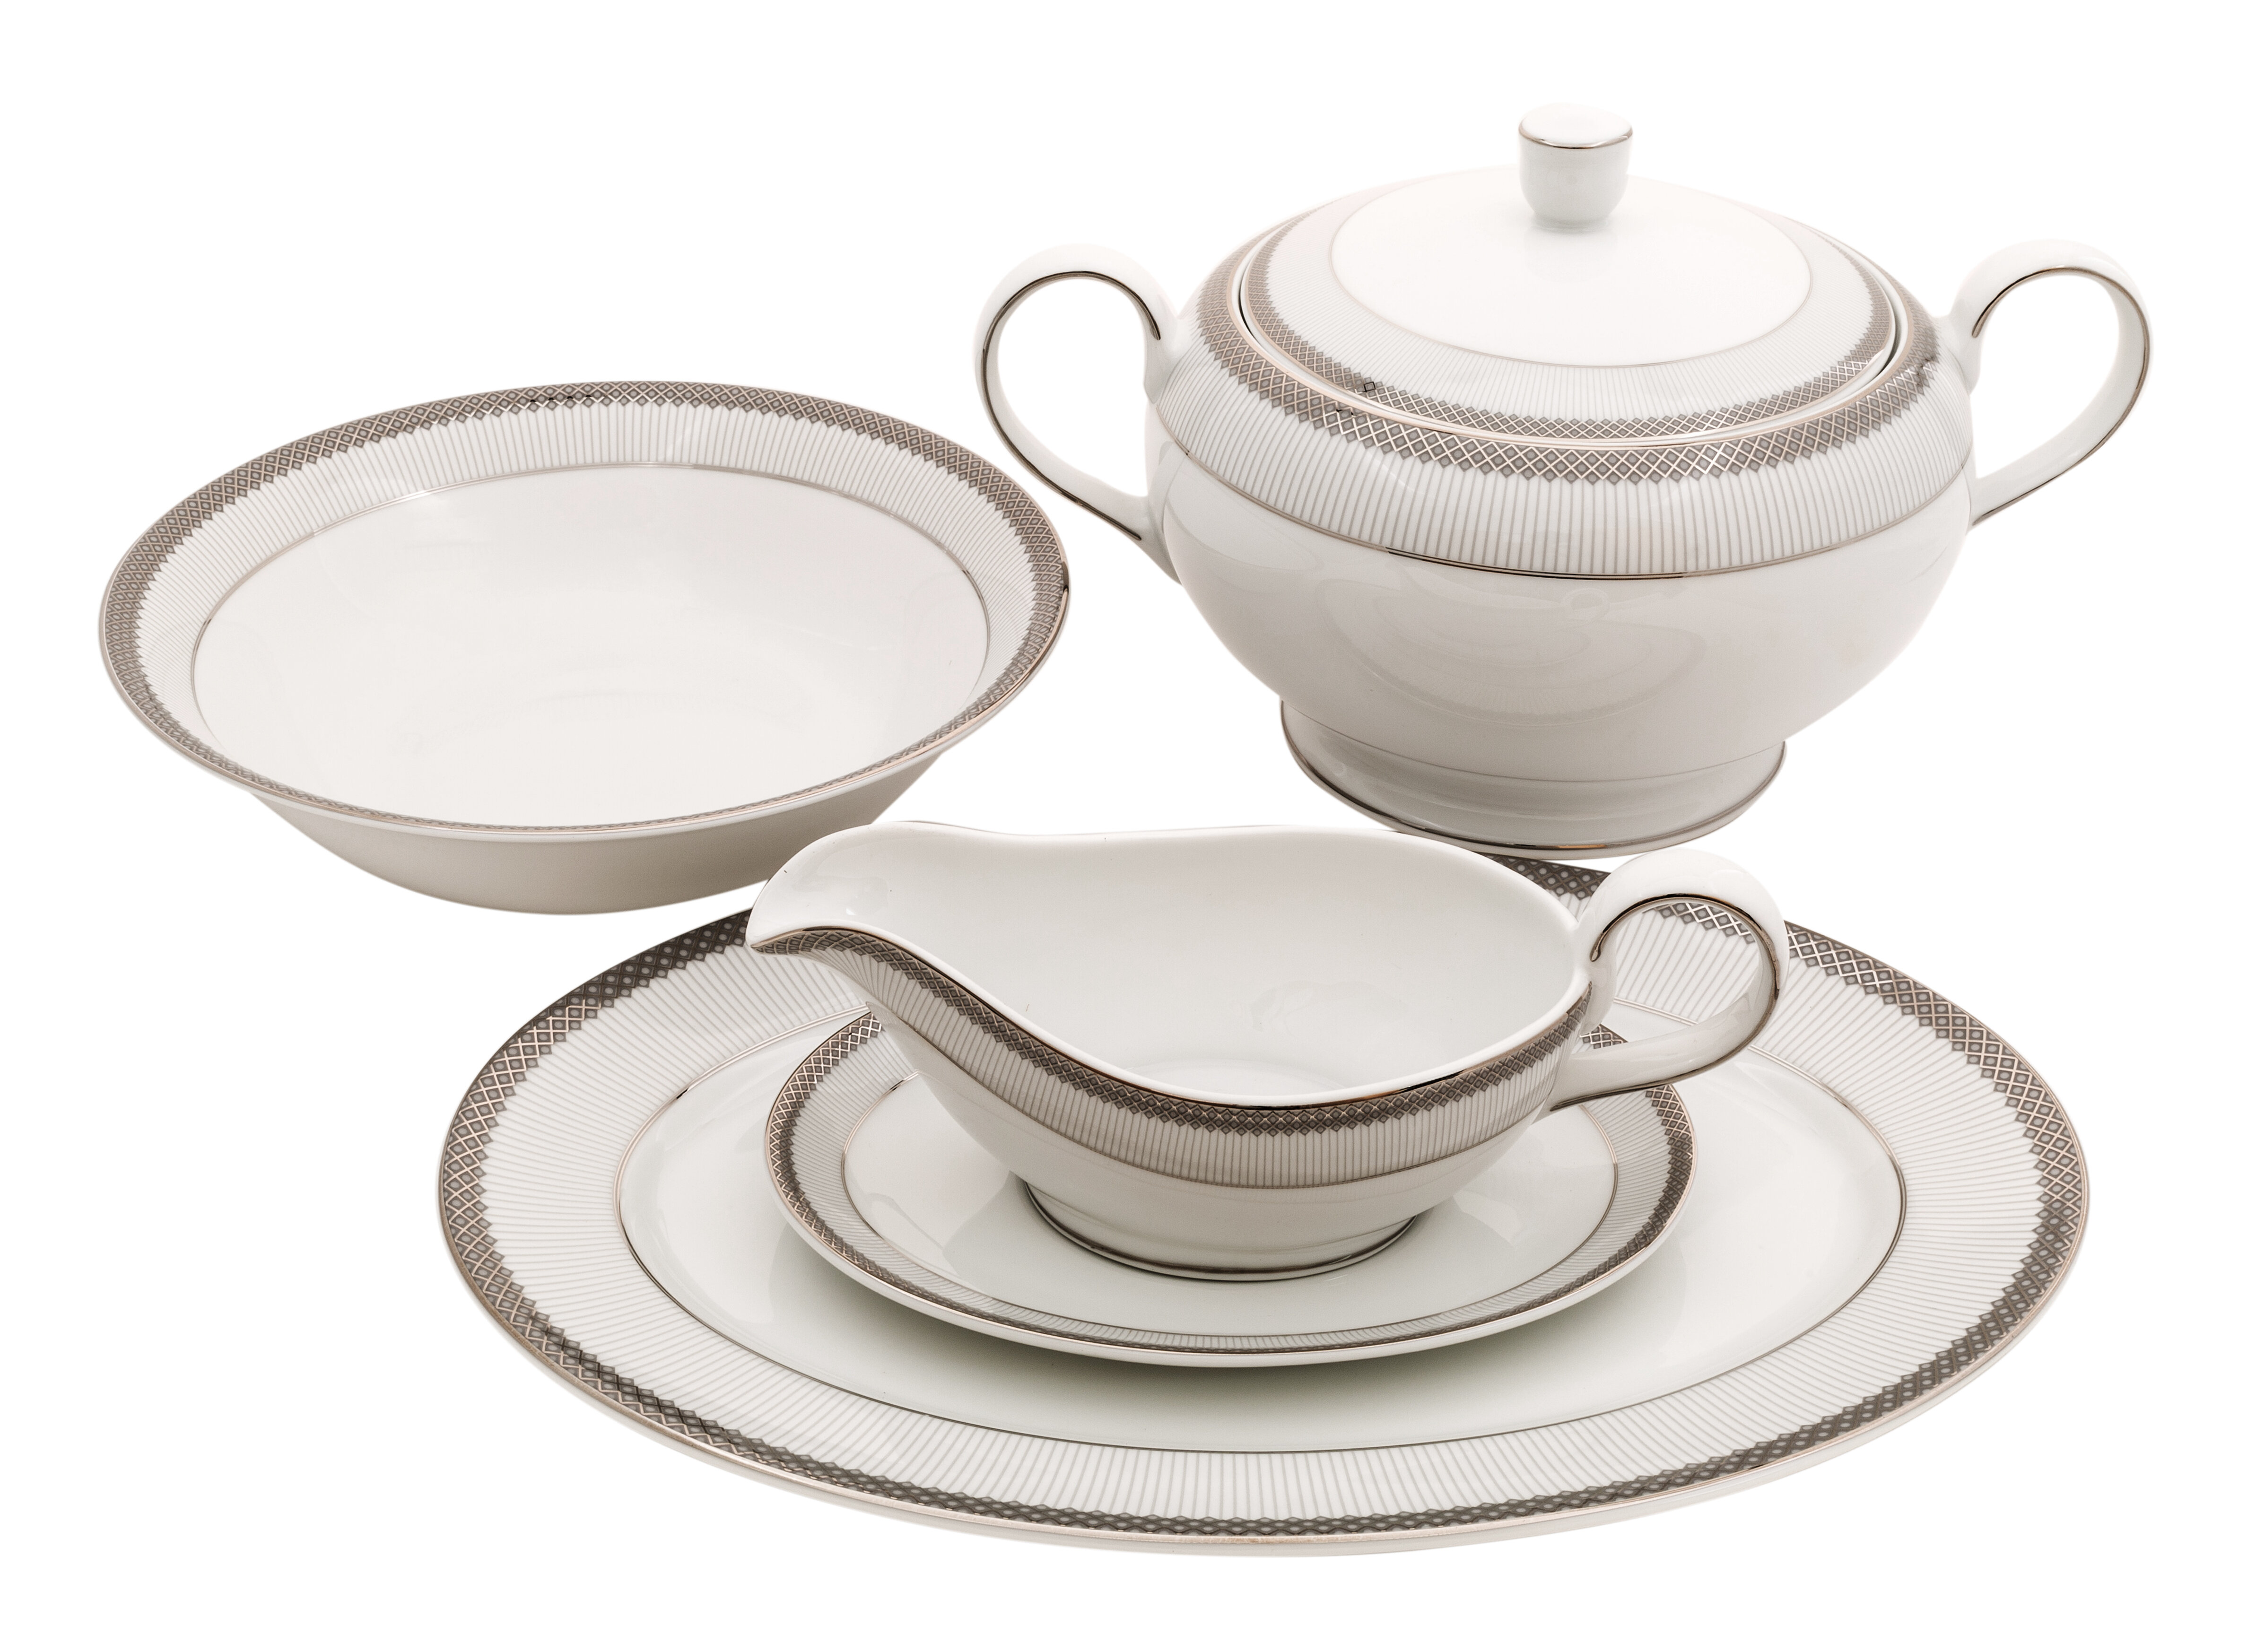 Shinepukur Ceramics USA Inc. Diamond Fine China Special Serving 5 Piece Dinnerware Set | Wayfair  sc 1 st  Wayfair & Shinepukur Ceramics USA Inc. Diamond Fine China Special Serving 5 ...